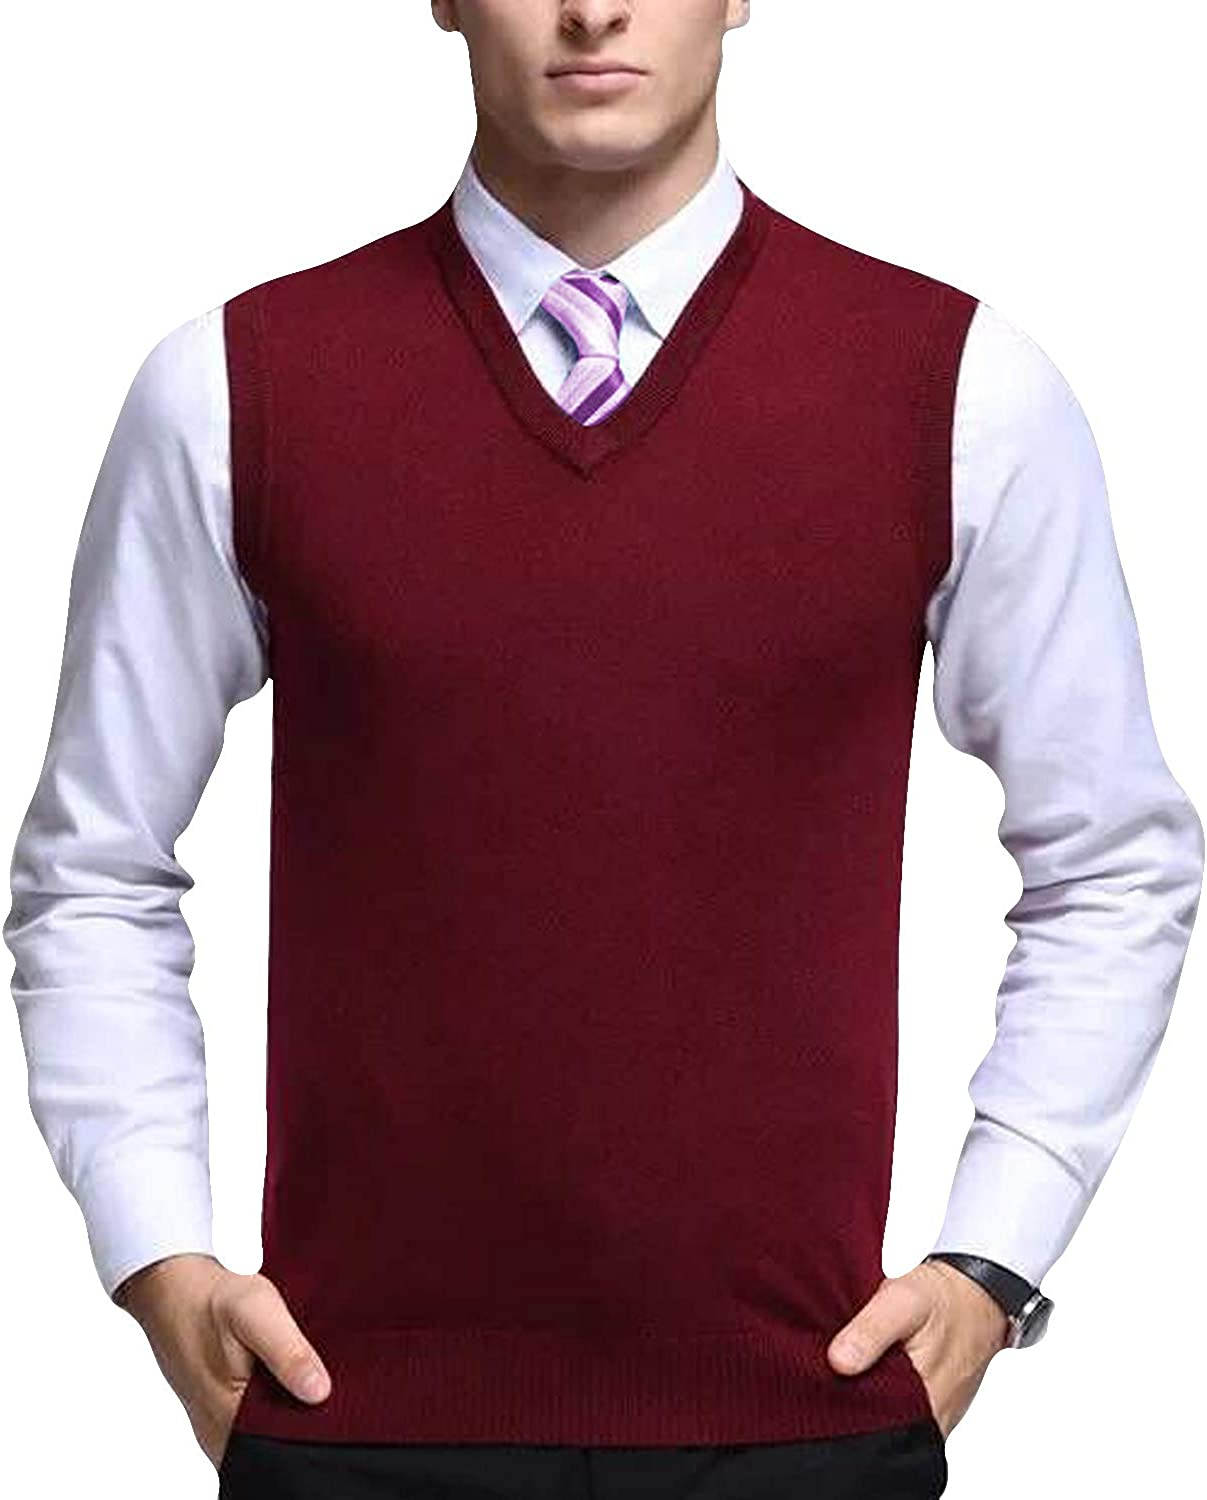 Eradria Men's Winter Classic Wool Sleeveless V Neck Pullover Gilet Cardigans Sweater Vest (XL) Wine